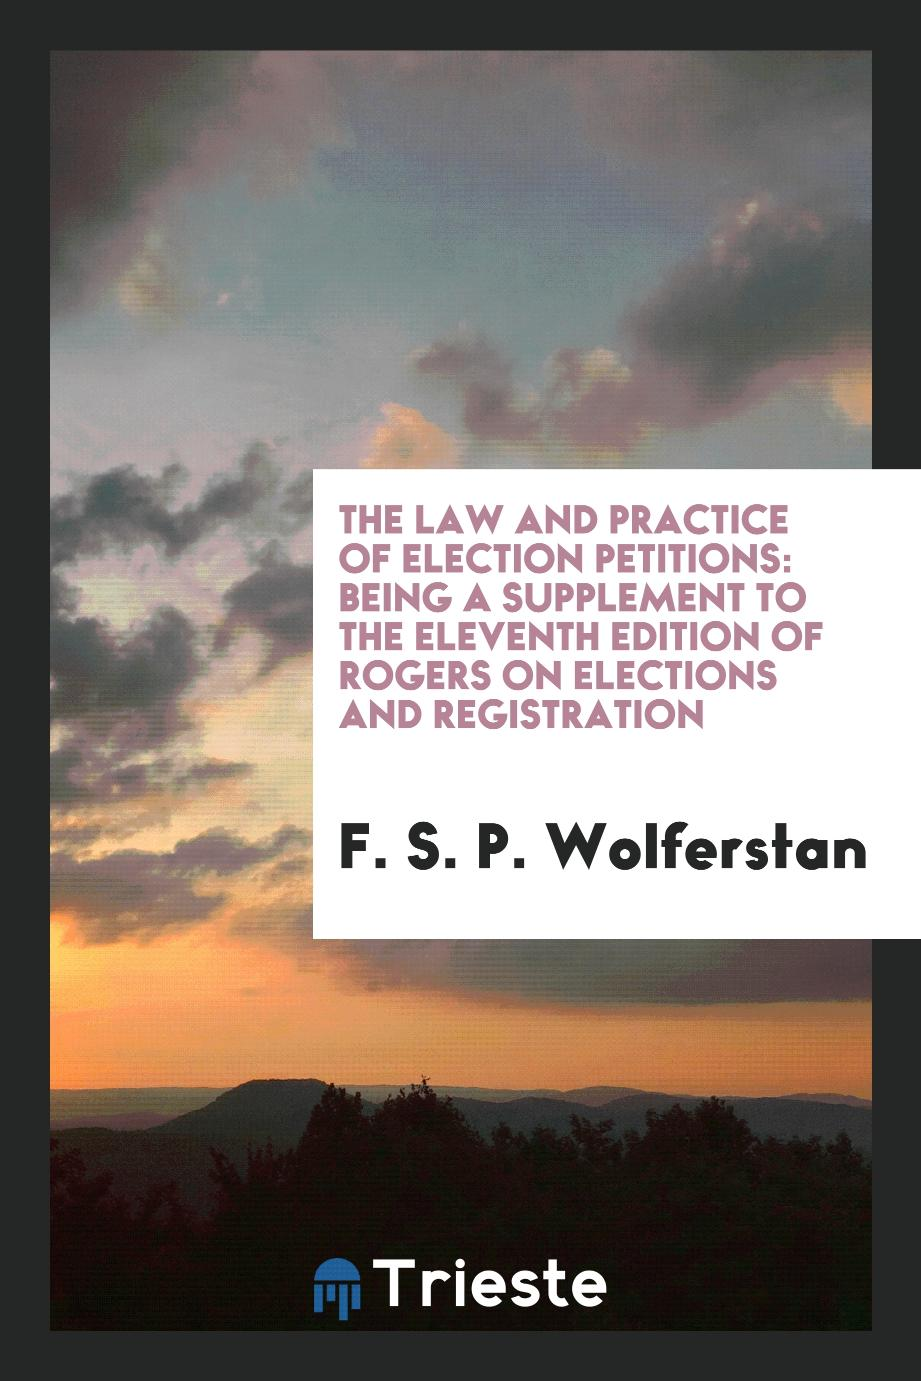 The Law and Practice of Election Petitions: Being a Supplement to the Eleventh Edition of Rogers on Elections and Registration